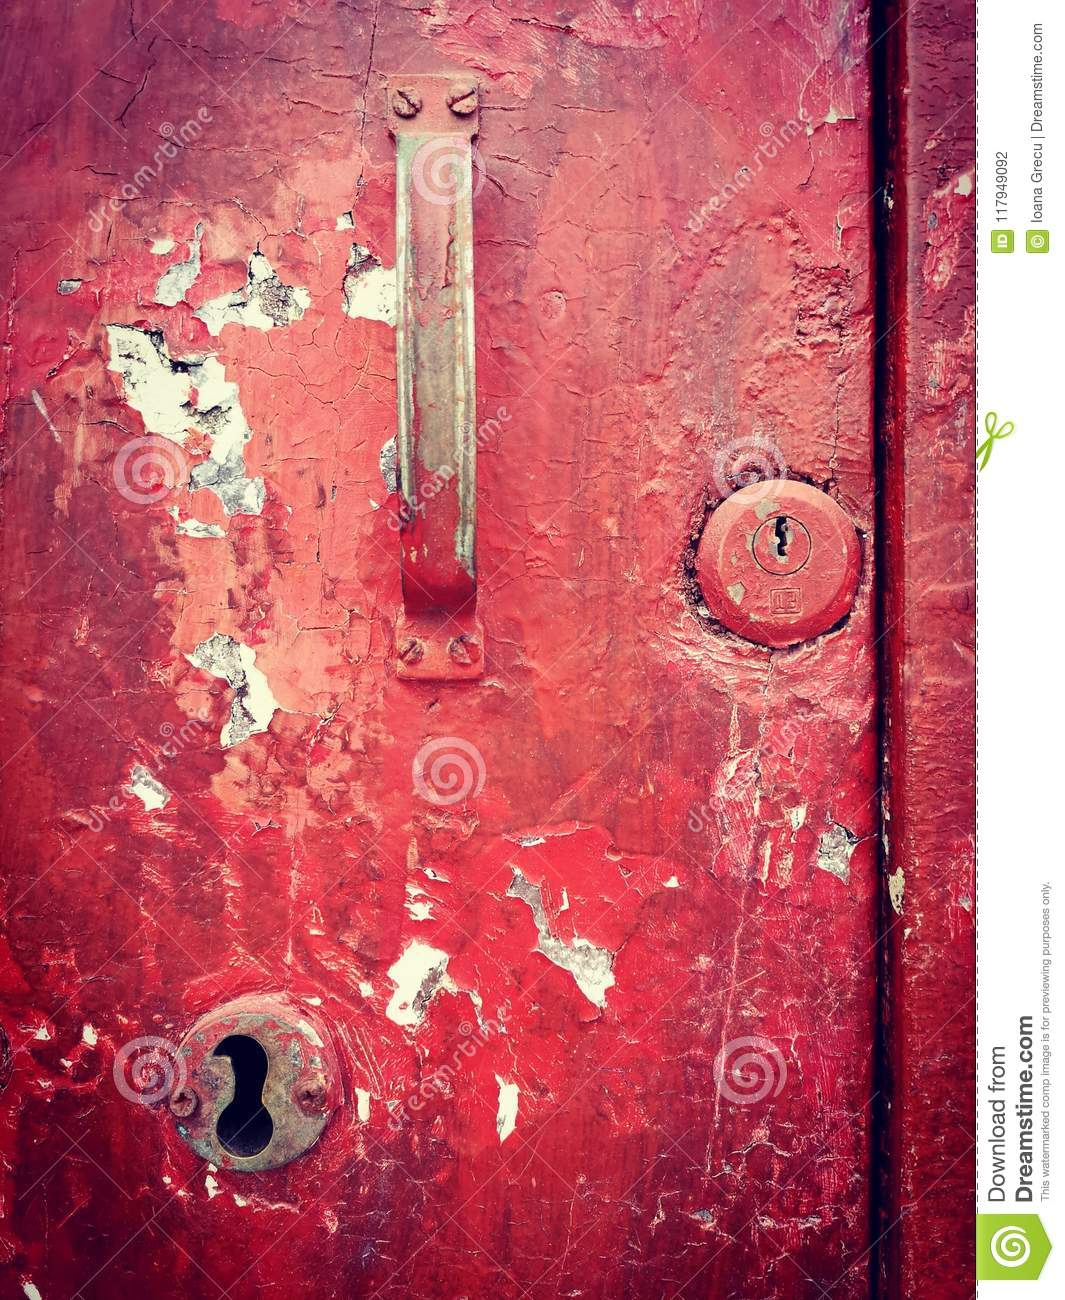 Old door keyhole and handle